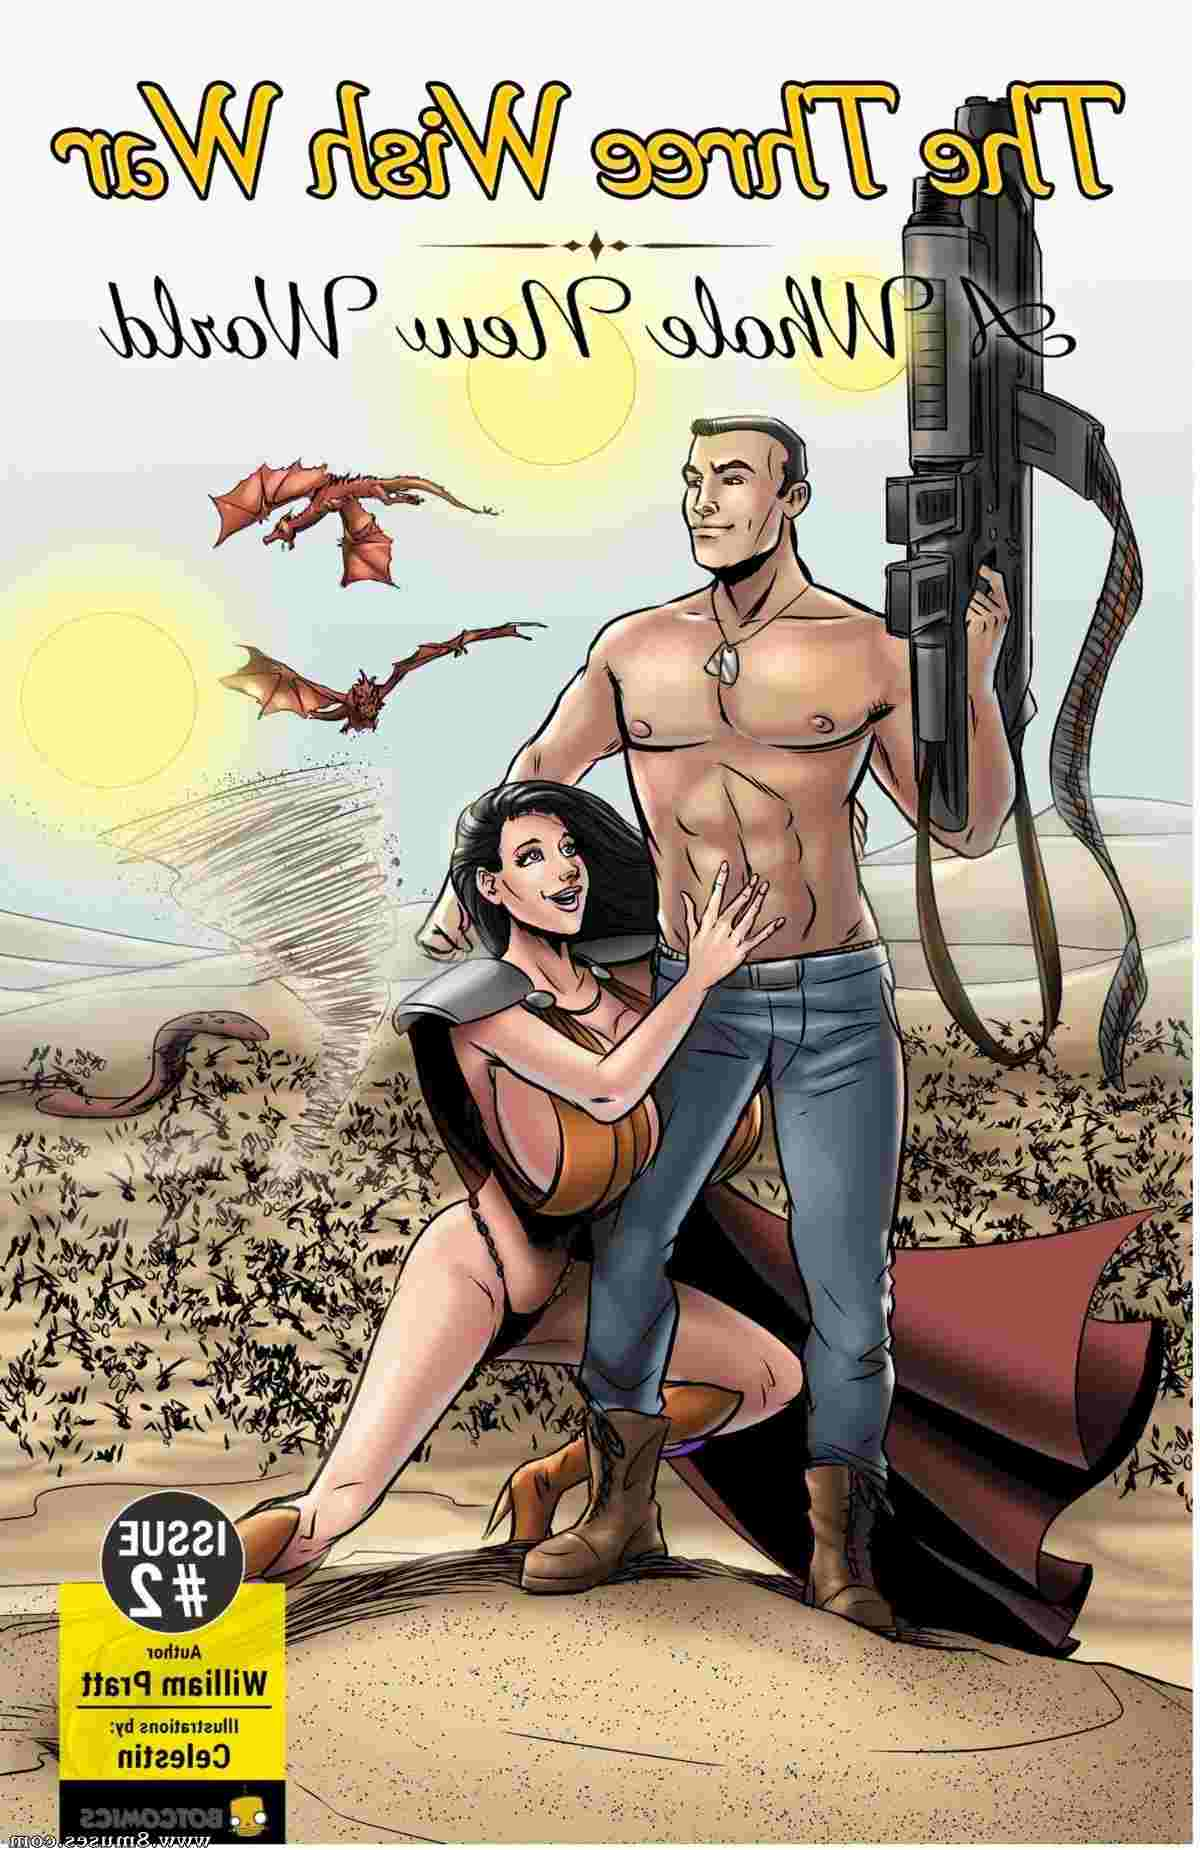 BE-Story-Club-Comics/The-Three-Wish-War The_Three_Wish_War__8muses_-_Sex_and_Porn_Comics_2.jpg